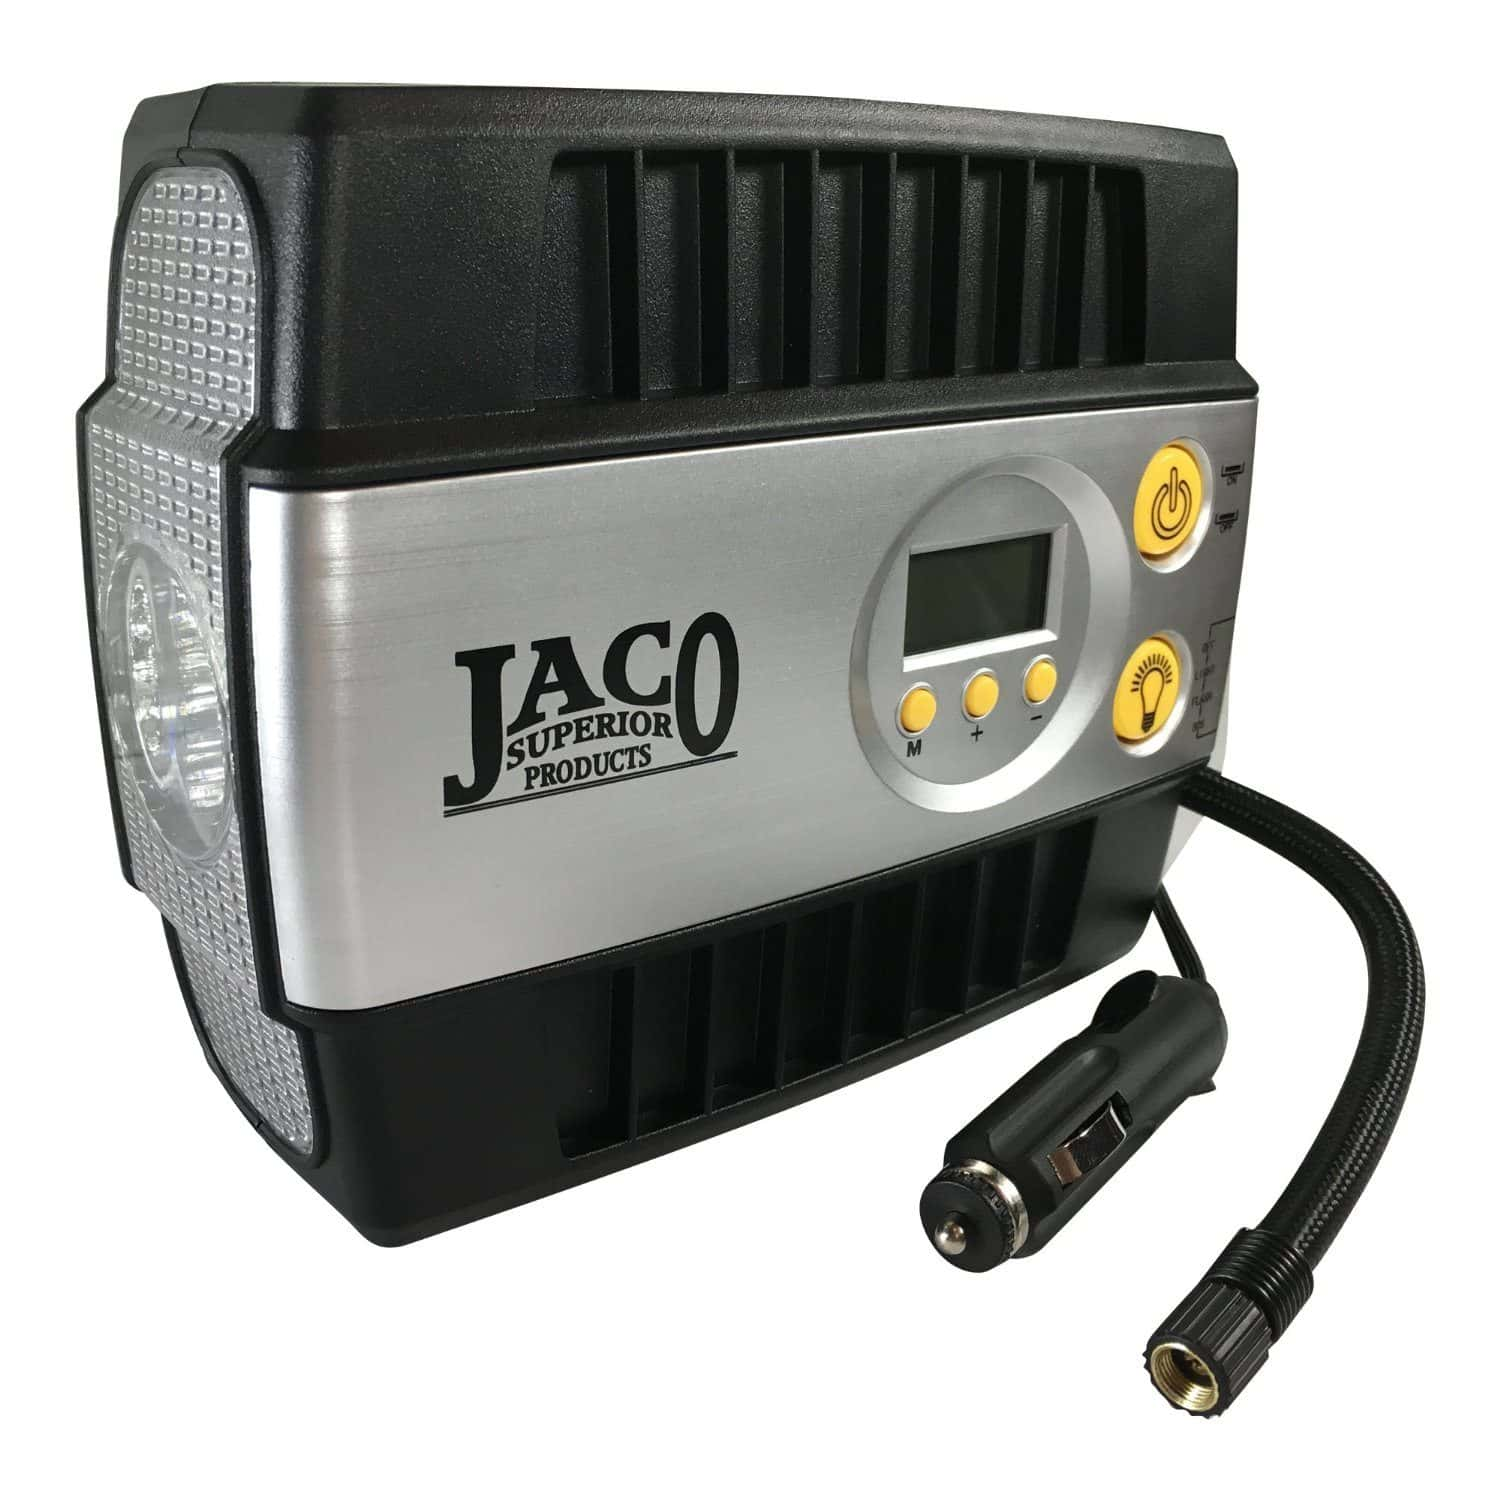 JACO Premium Digital Tire Inflator, 100 PSI